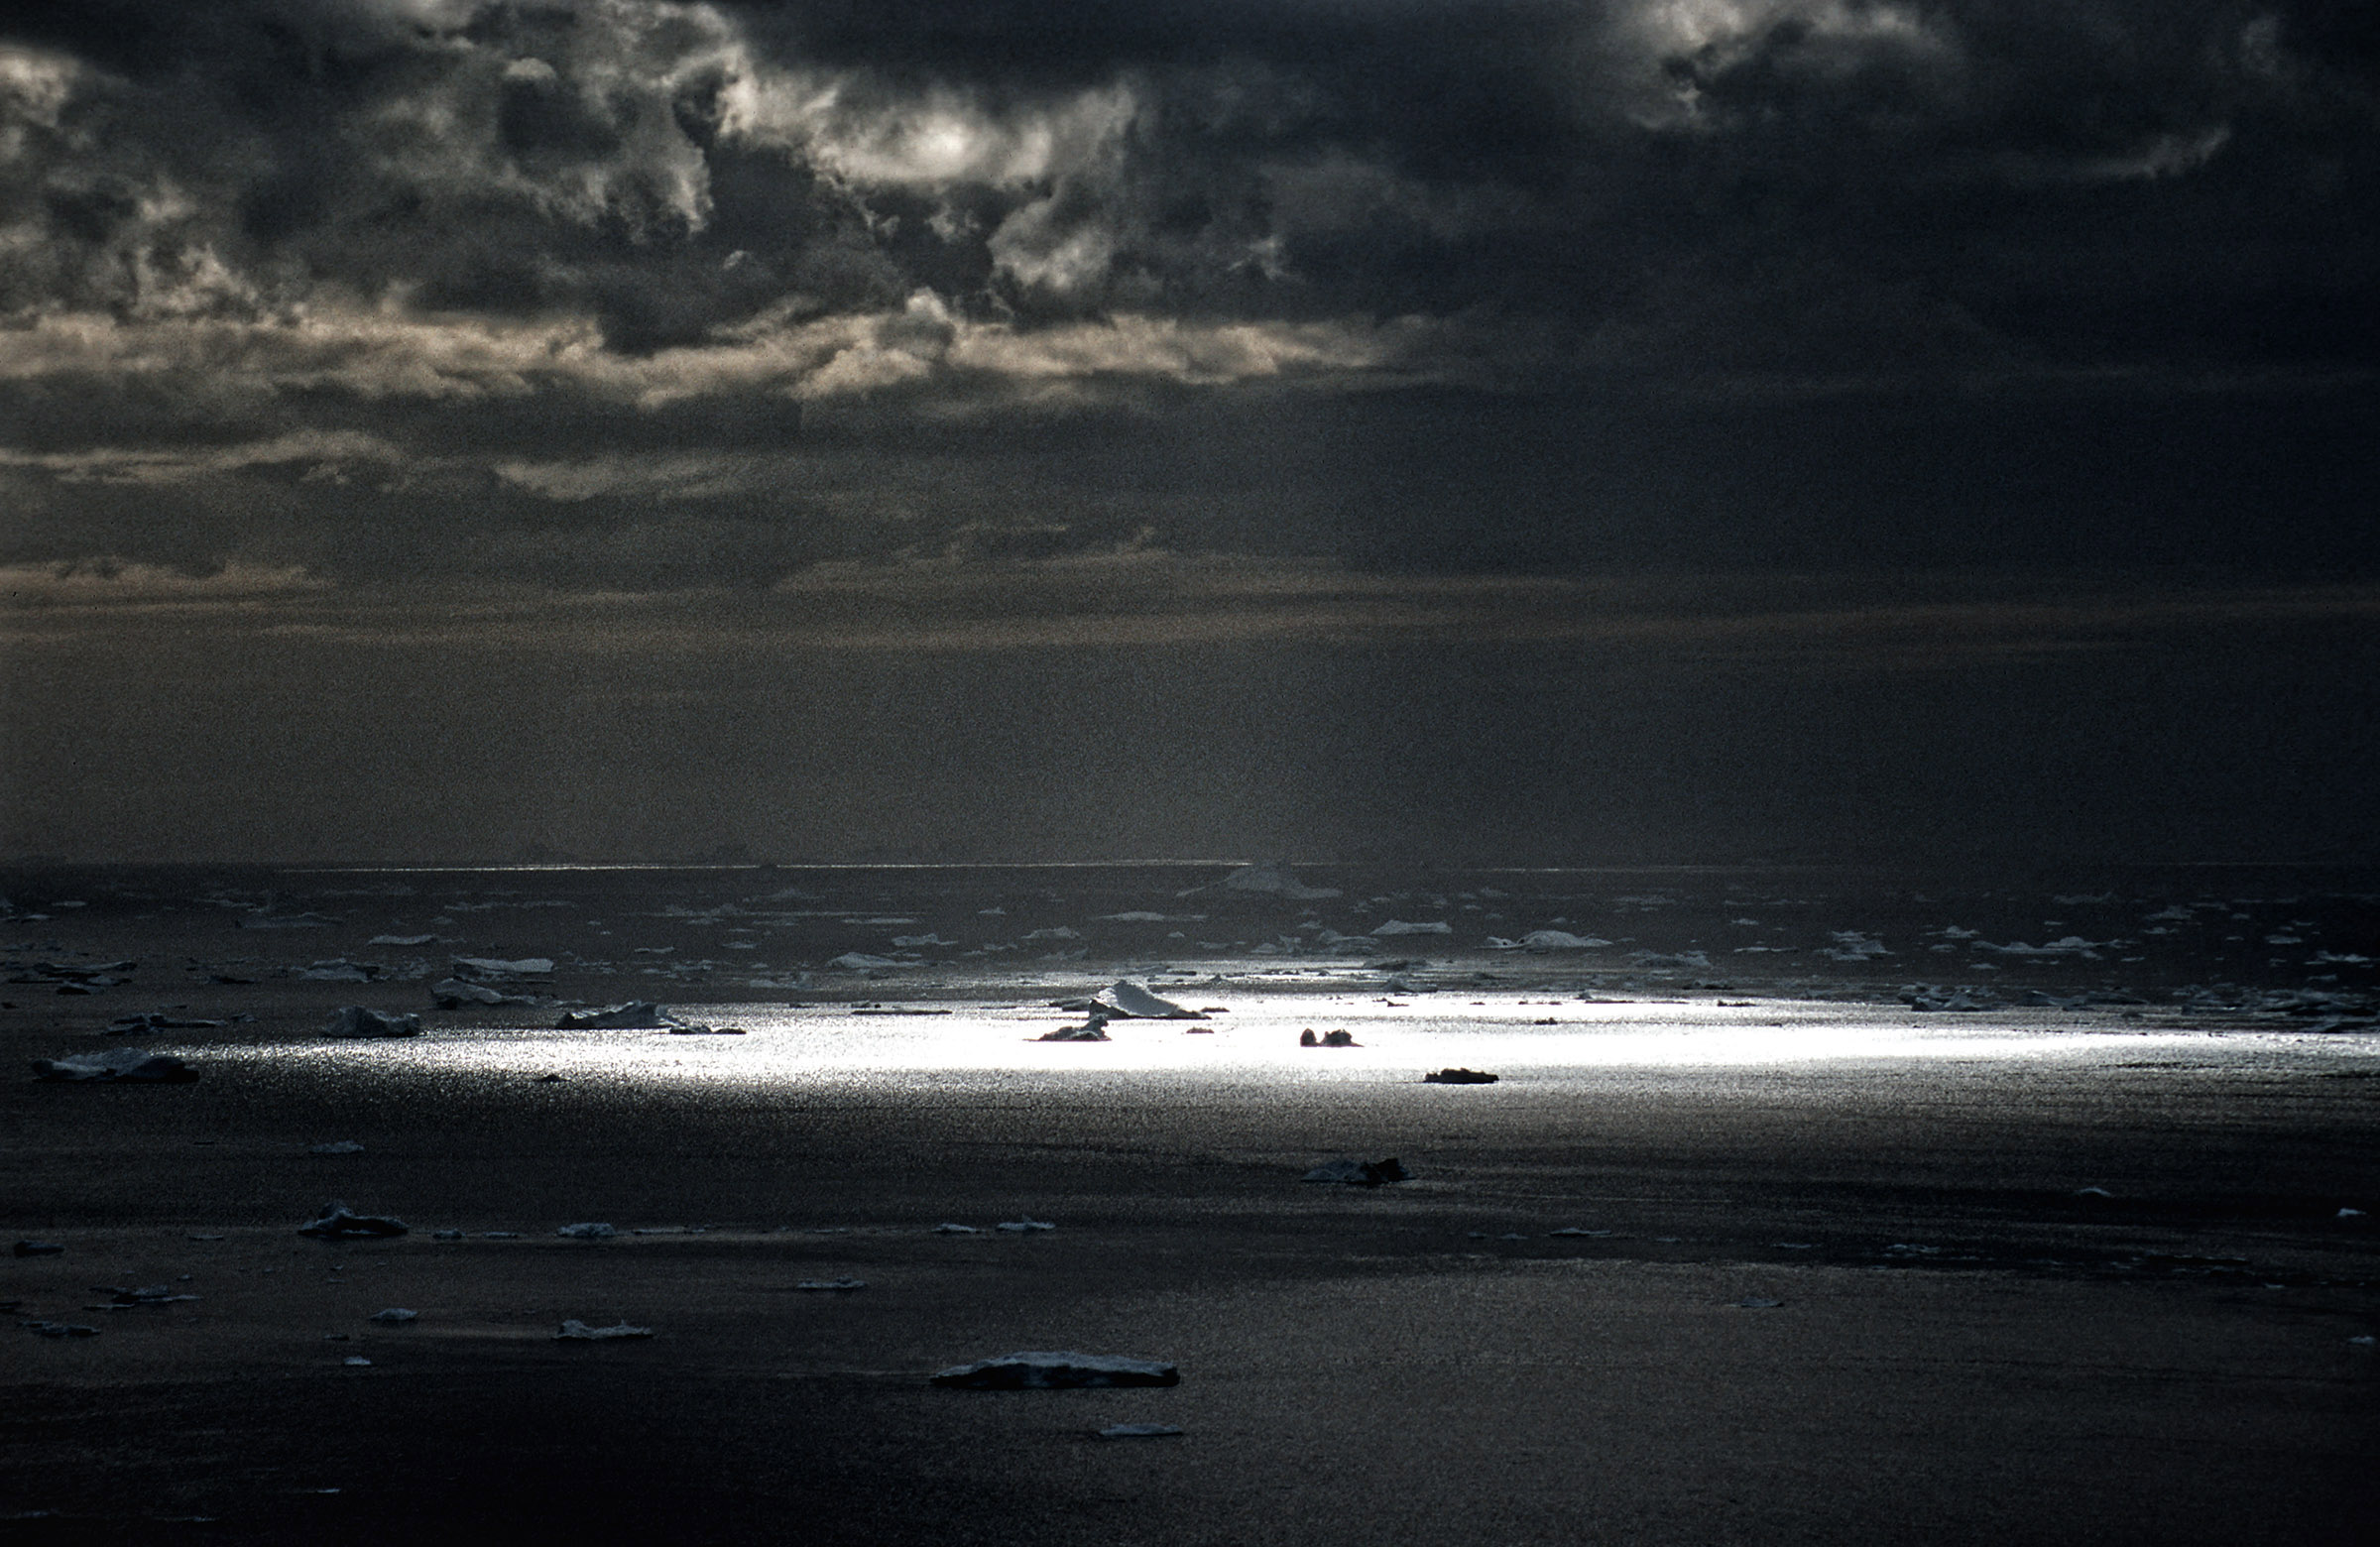 greenland-sun-spotlight-sea-dramatic